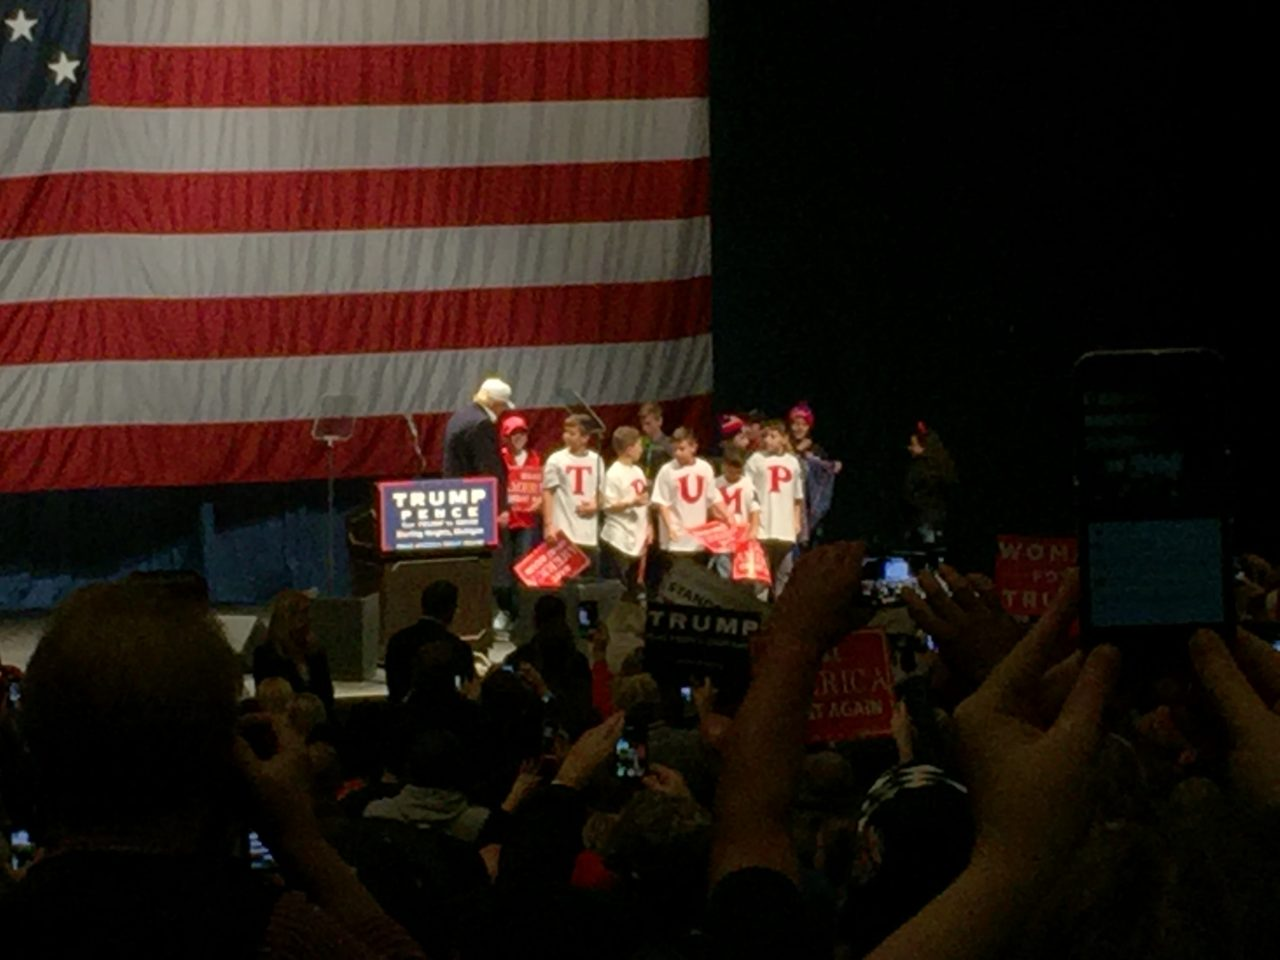 Kids on Stage for Trump Sterling Heights Michigan Rally (Joel Pollak / Breitbart News)